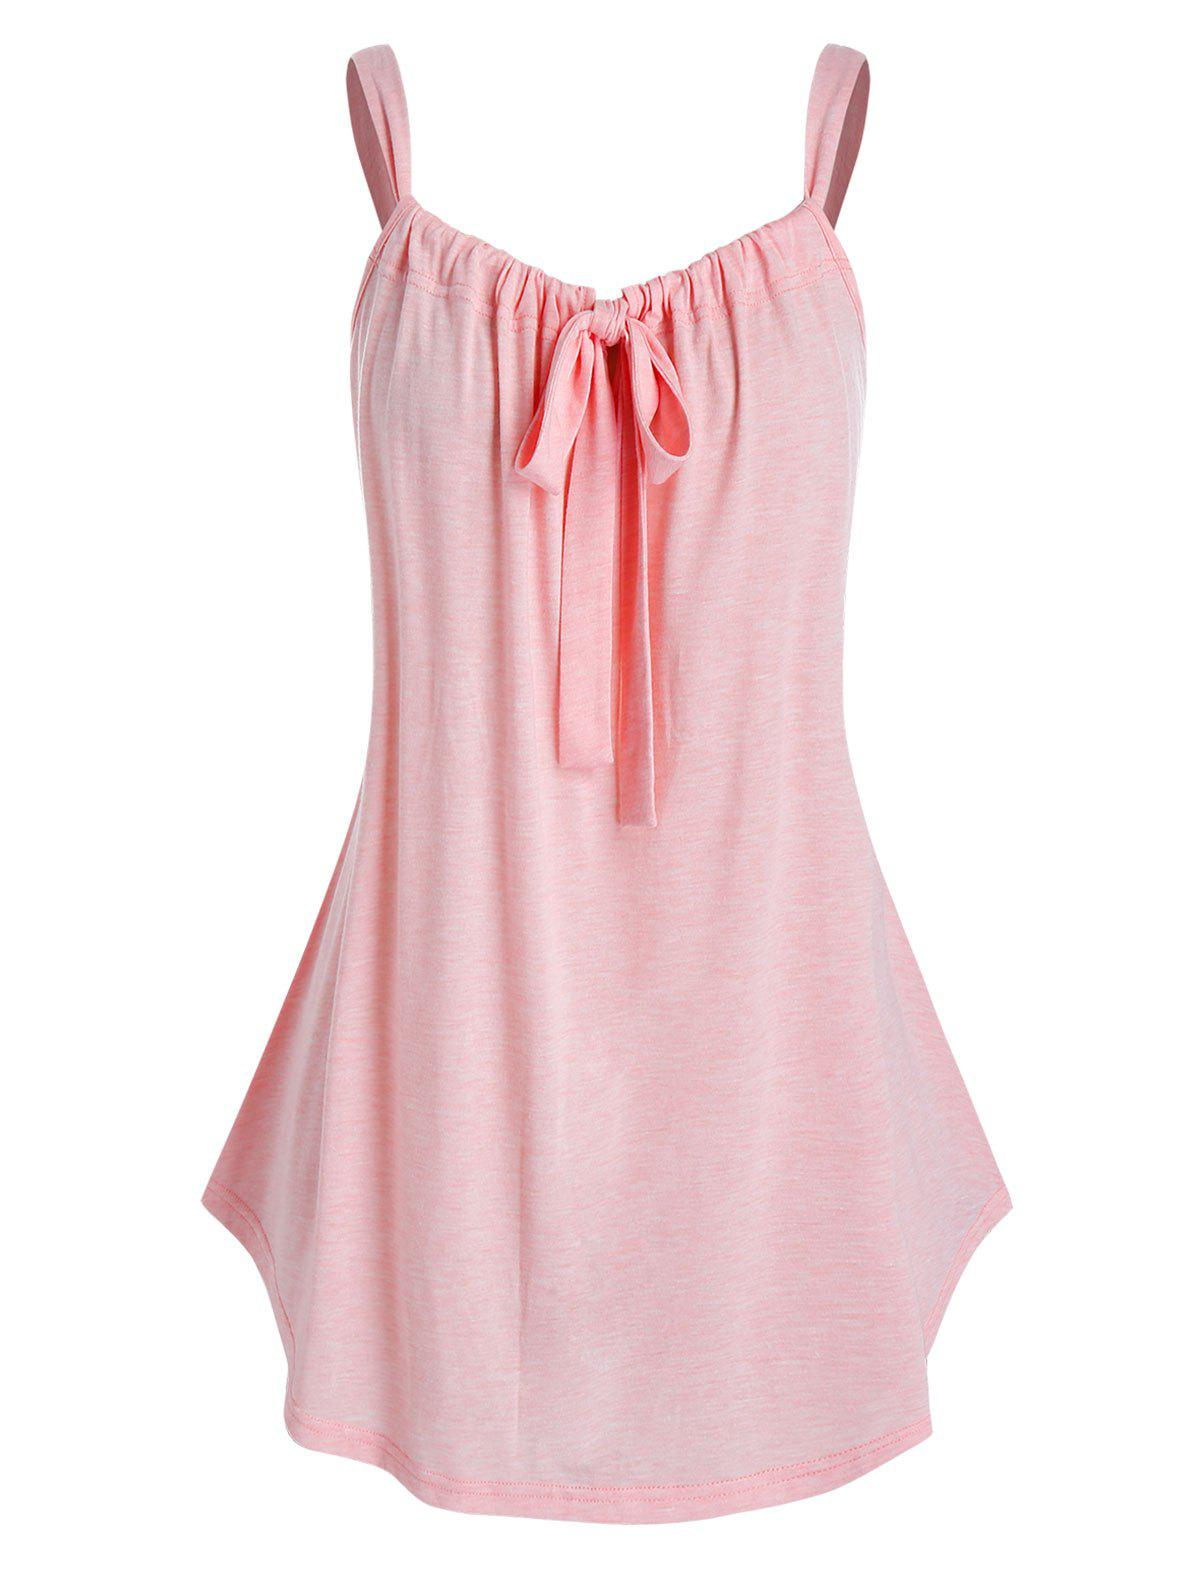 Plus Size Tie Front Curved Tunic Tank Top Rosegal